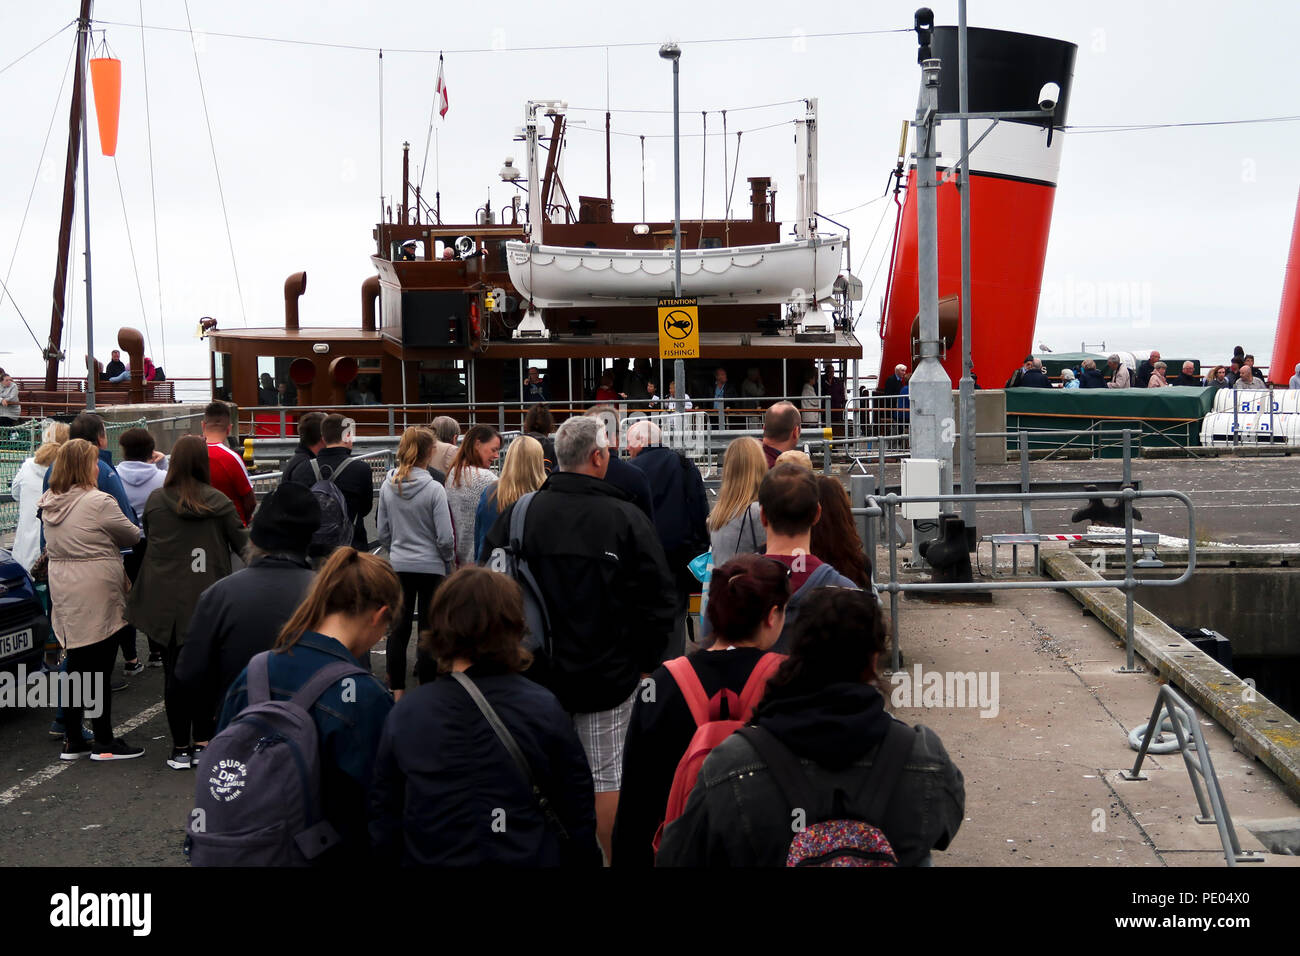 PS Waverley at Largs pier - Stock Image